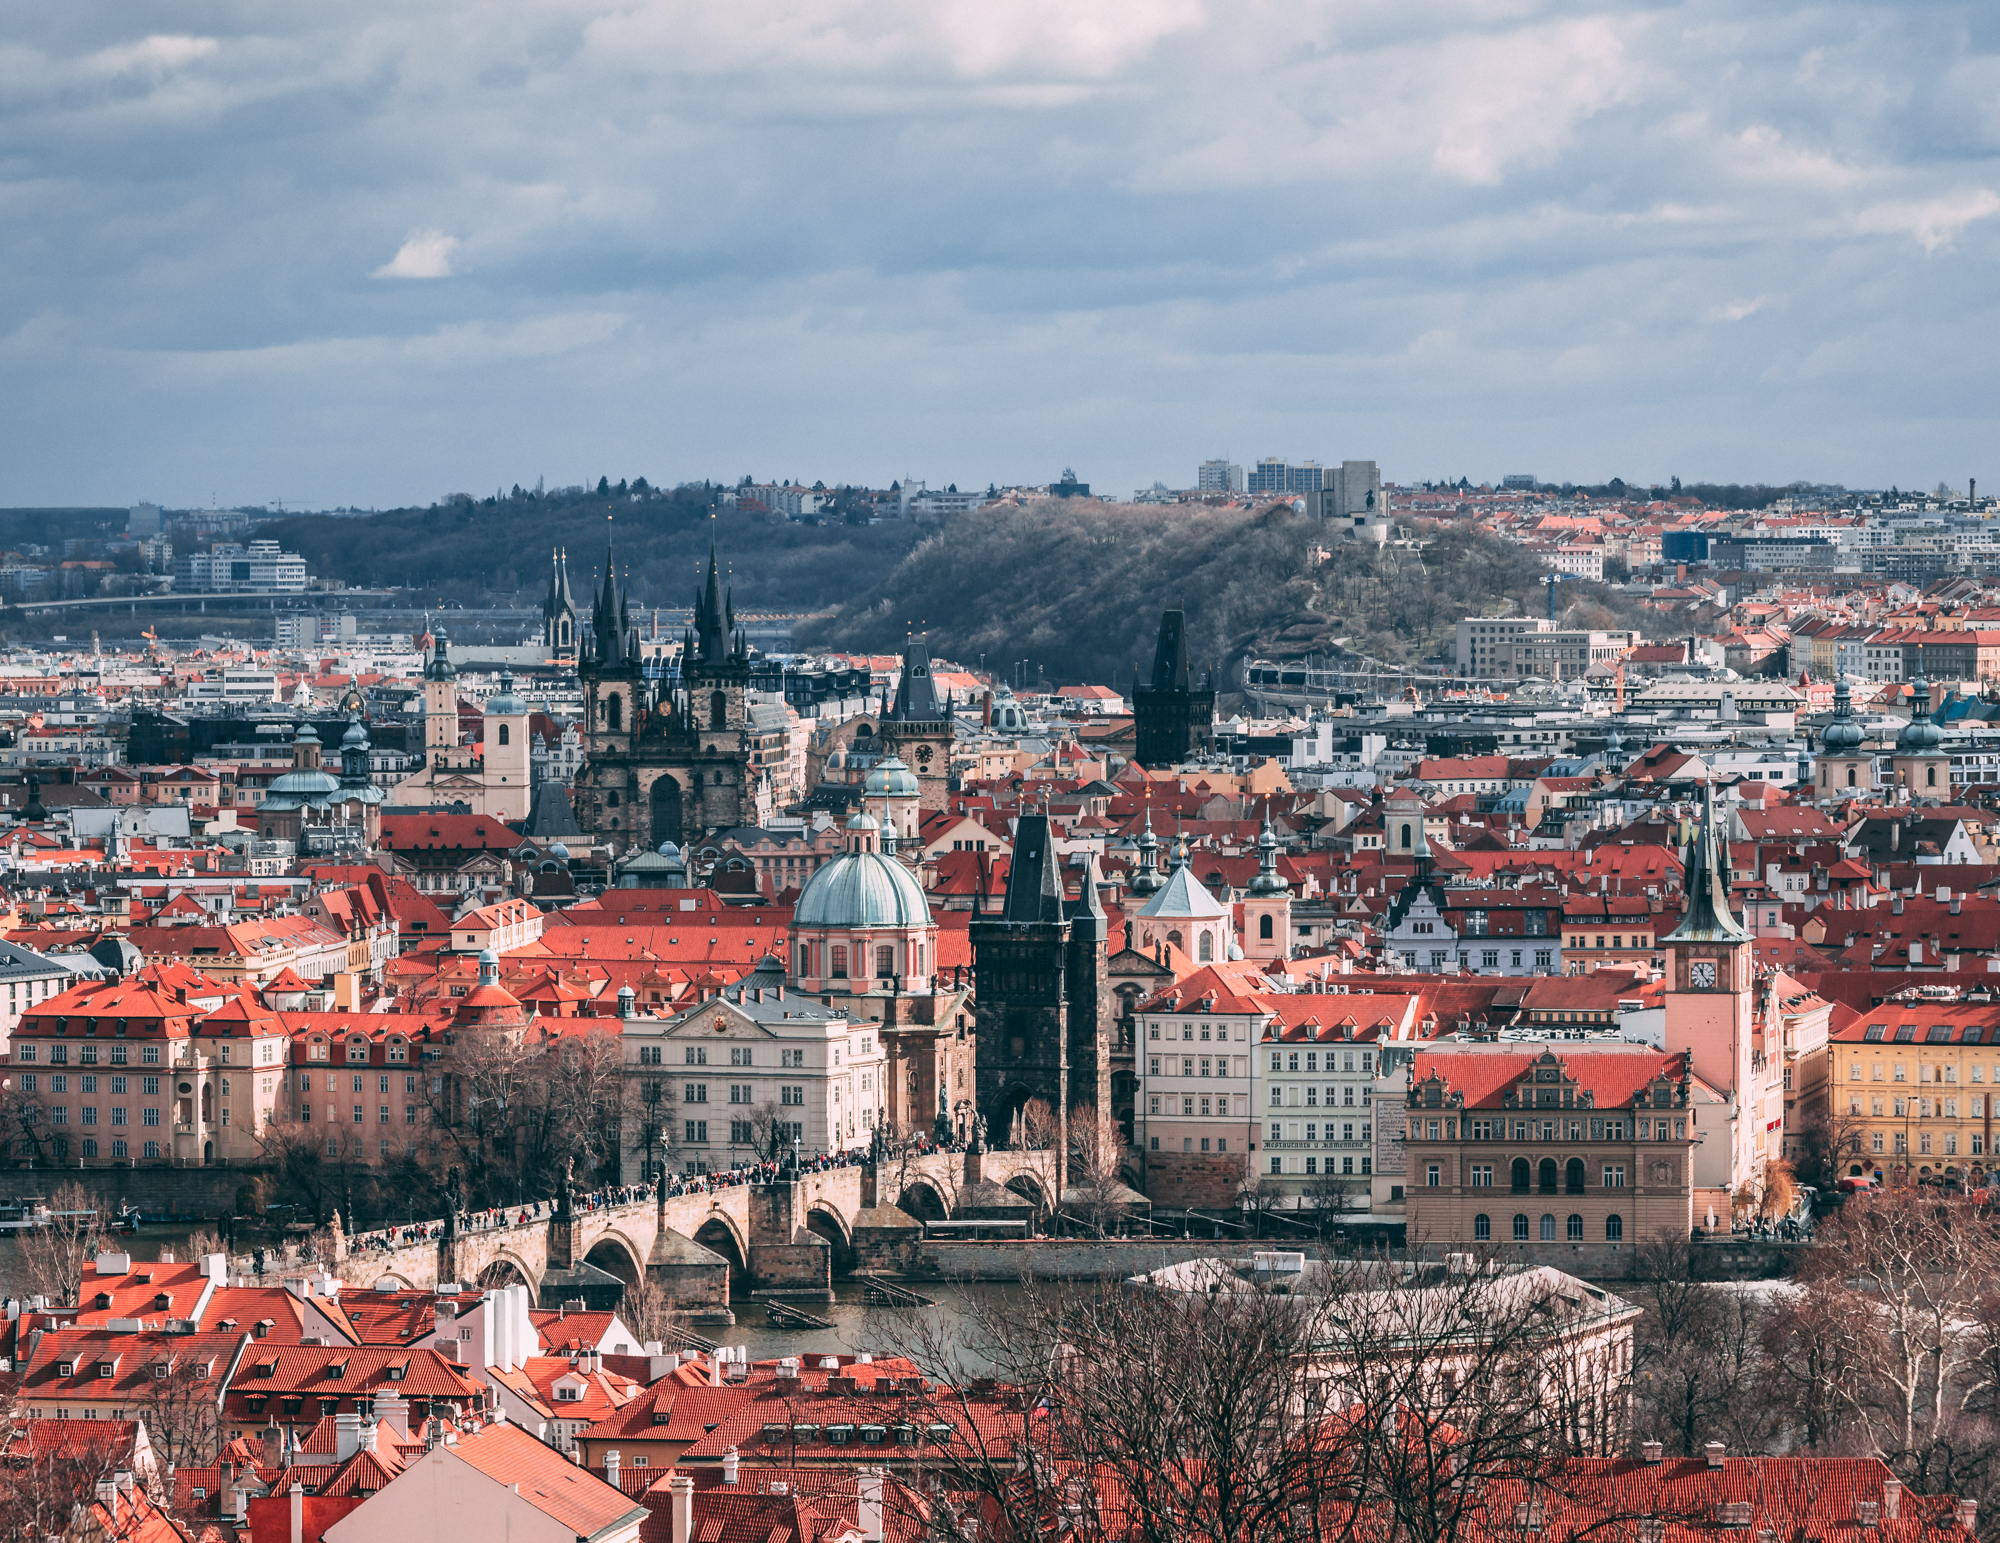 The Charles Bridge, the Old Town and beyond in Prague as seen from the Petřín Hill